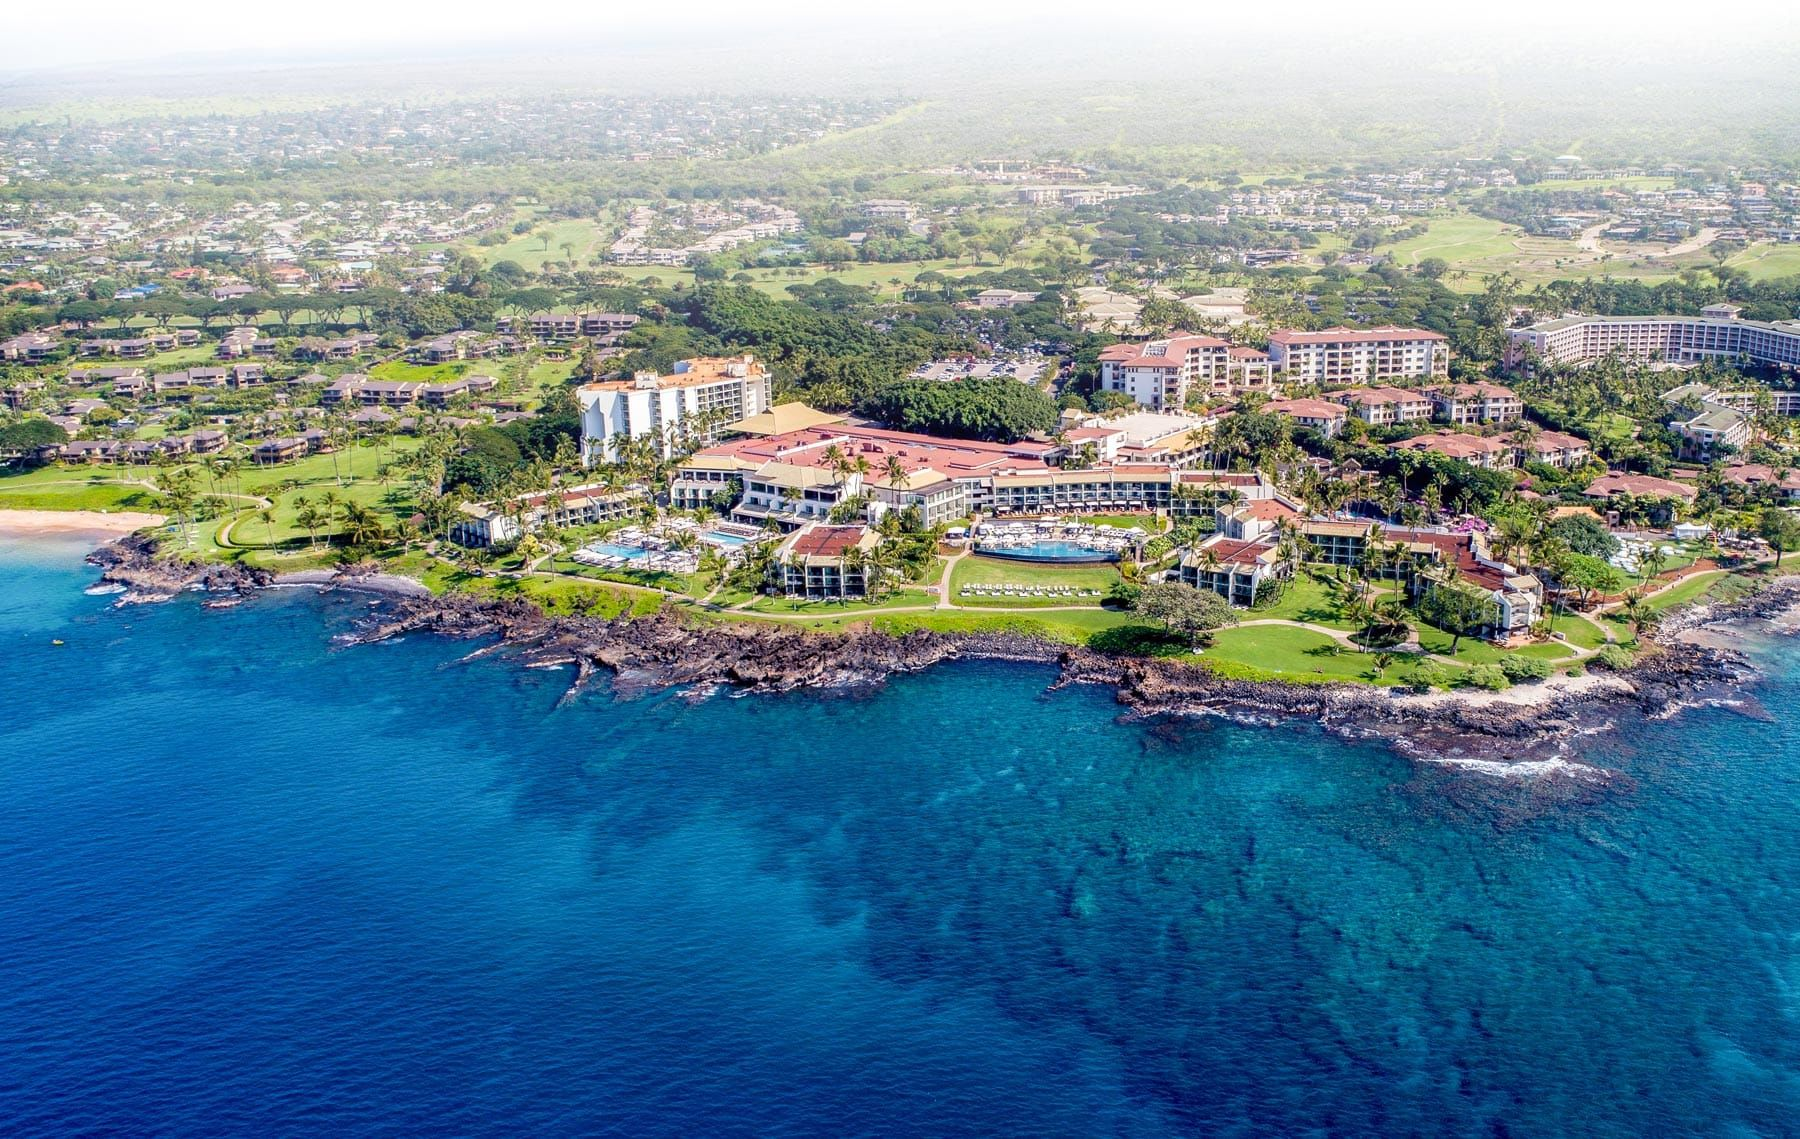 New Maui Hotel Wailea Beach Resort